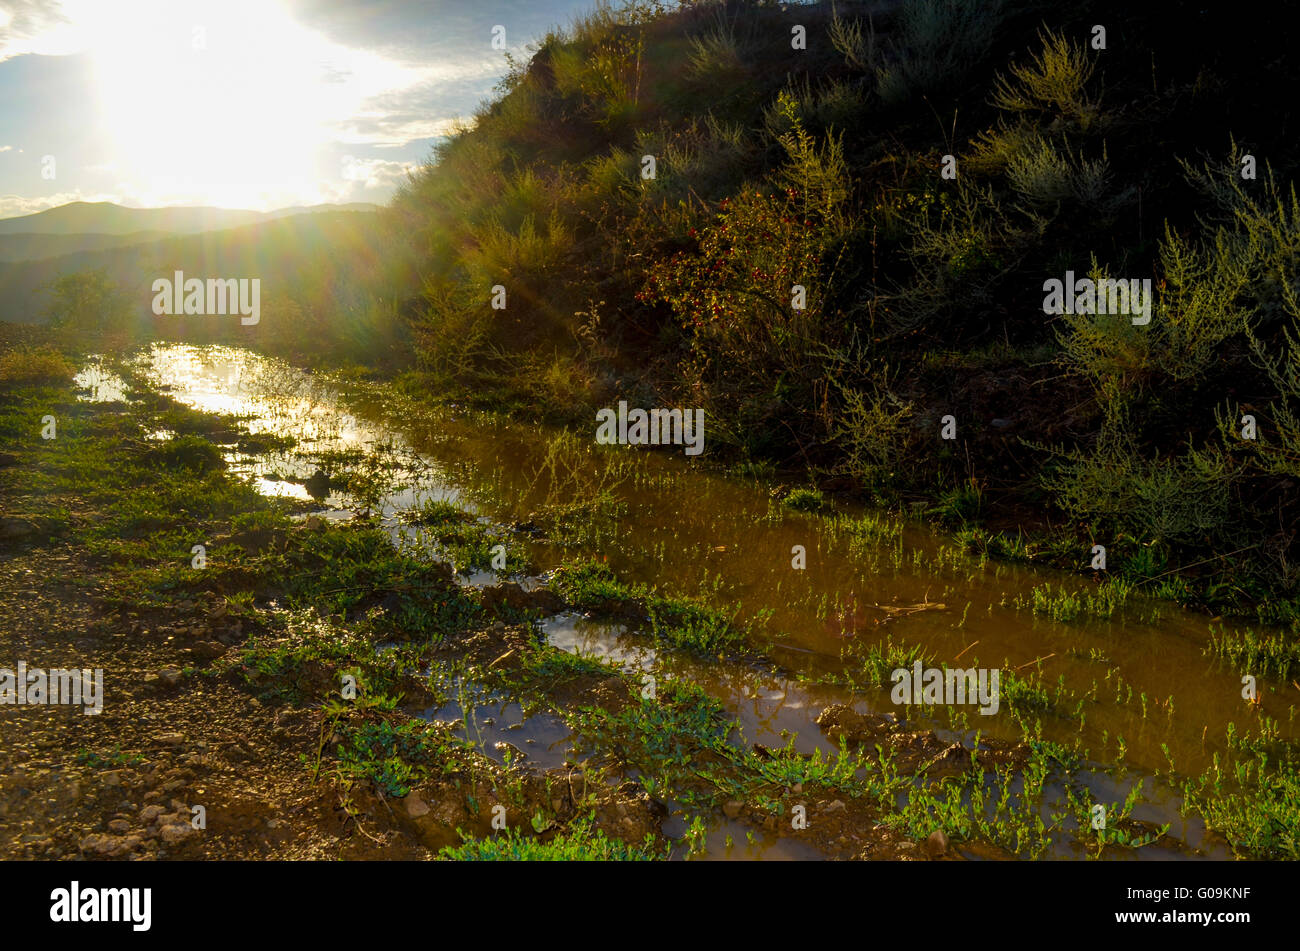 A big dirty puddle - Stock Image